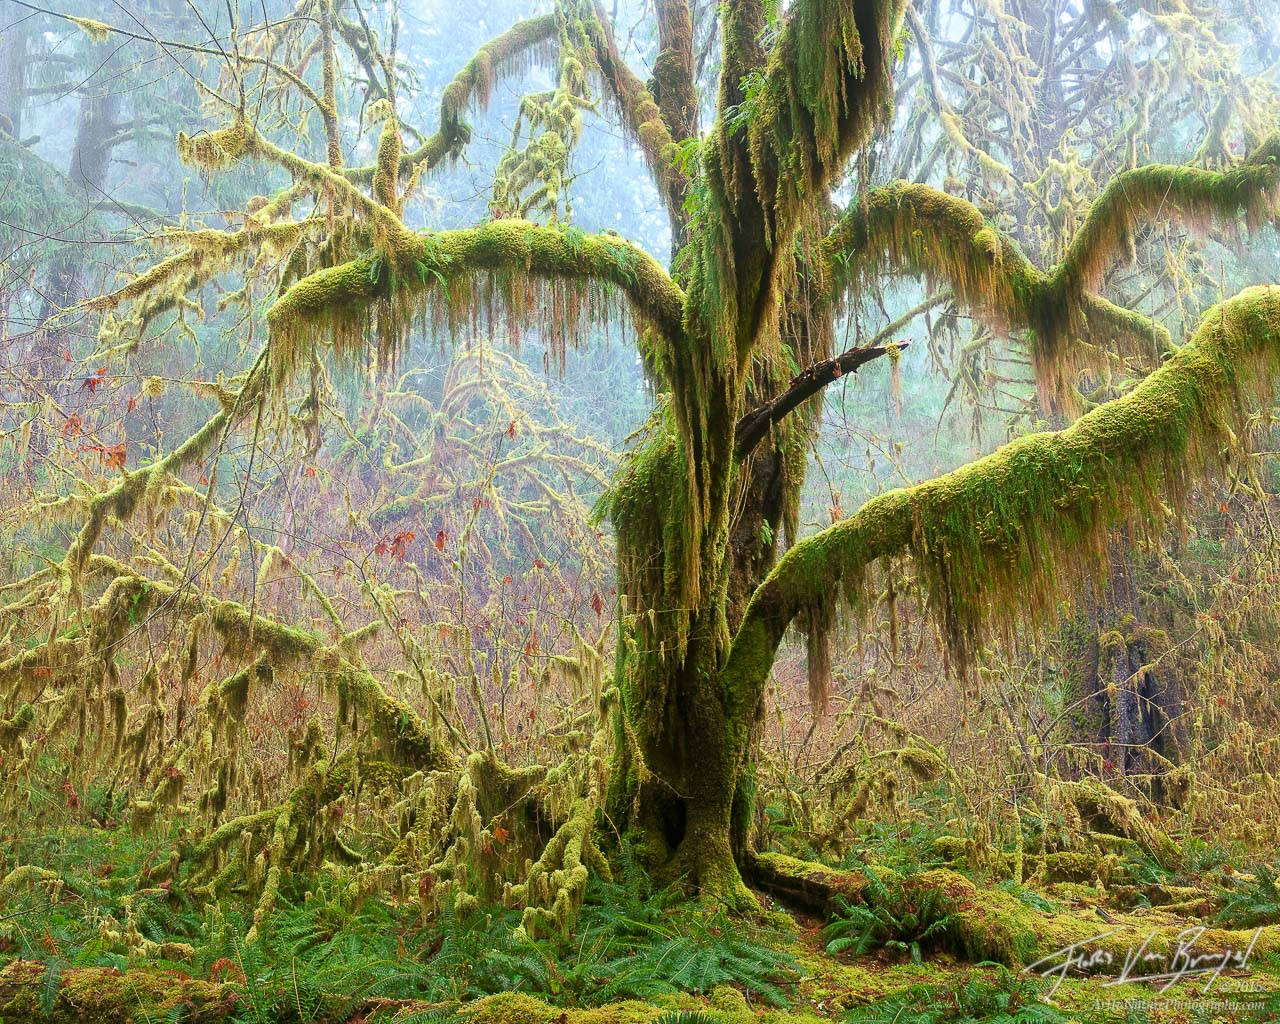 Hoh Rainforest Mossy Tree, Olympic National Park, Washington, Spirit of the Hoh, maple, fog, , photo